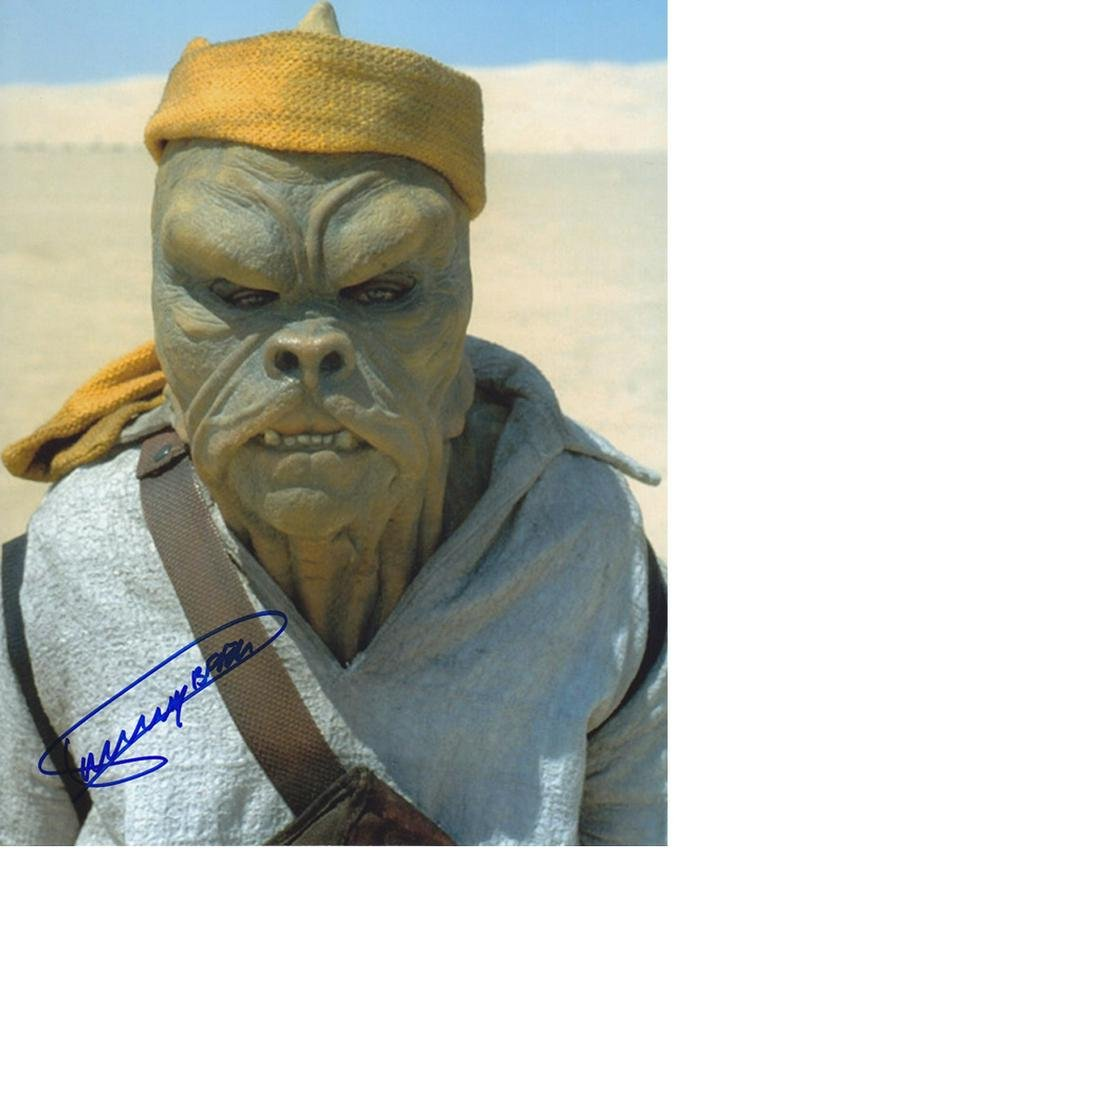 Dickey Beer Star Wars hand signed 10x8 photo. This